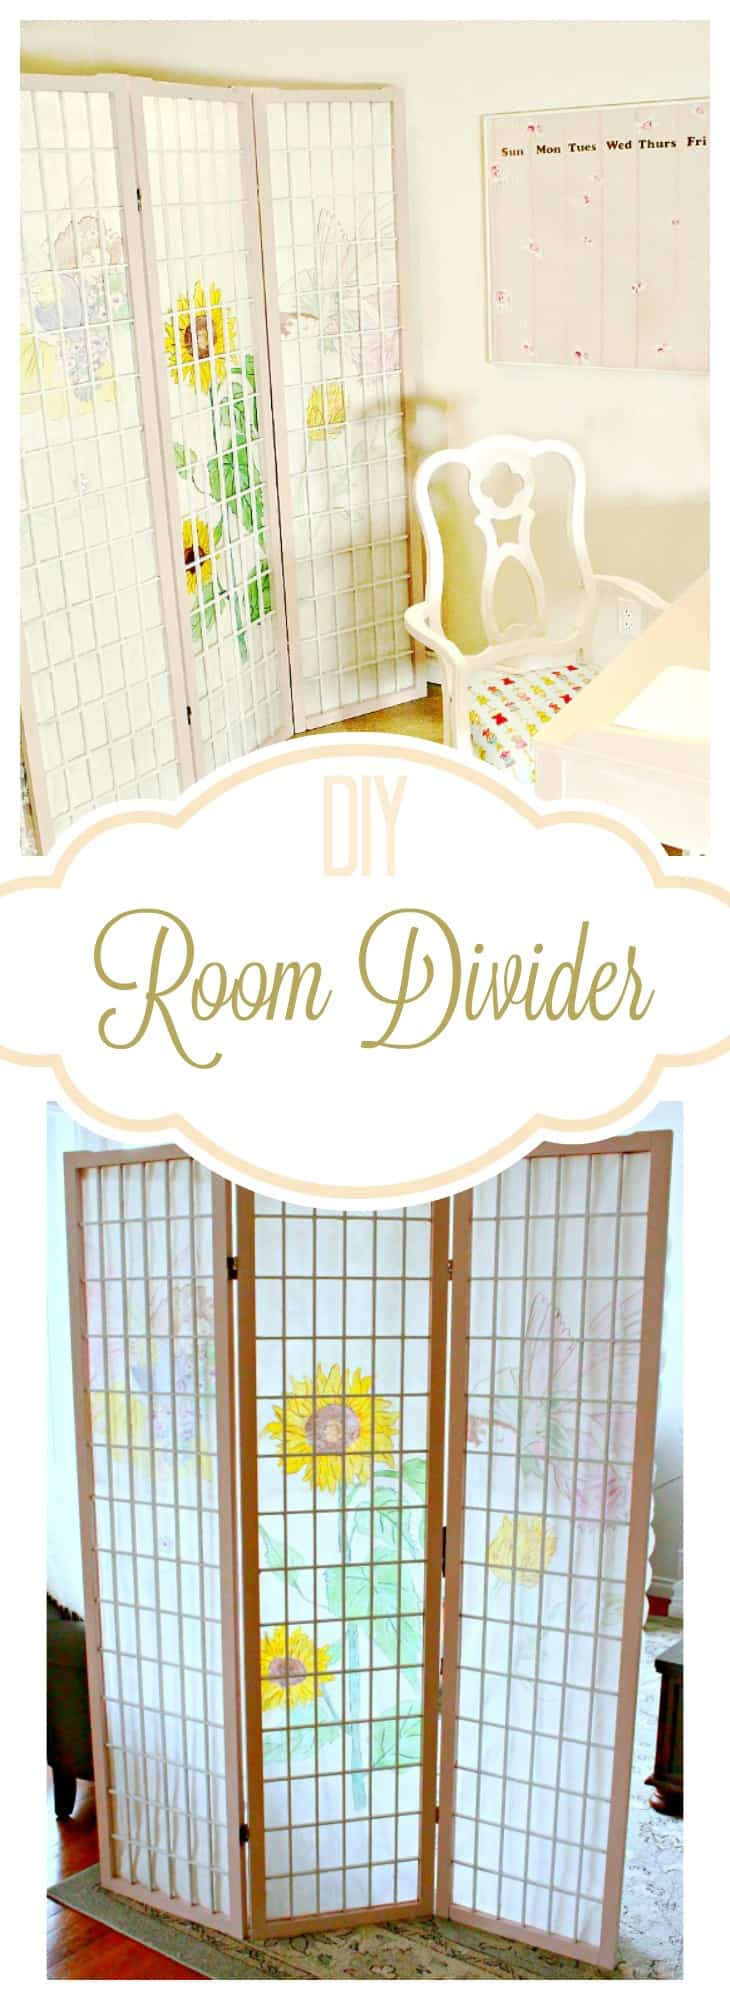 Room Dividers Room Screens Diy Room Divider Cheap Room Divider Room Divider